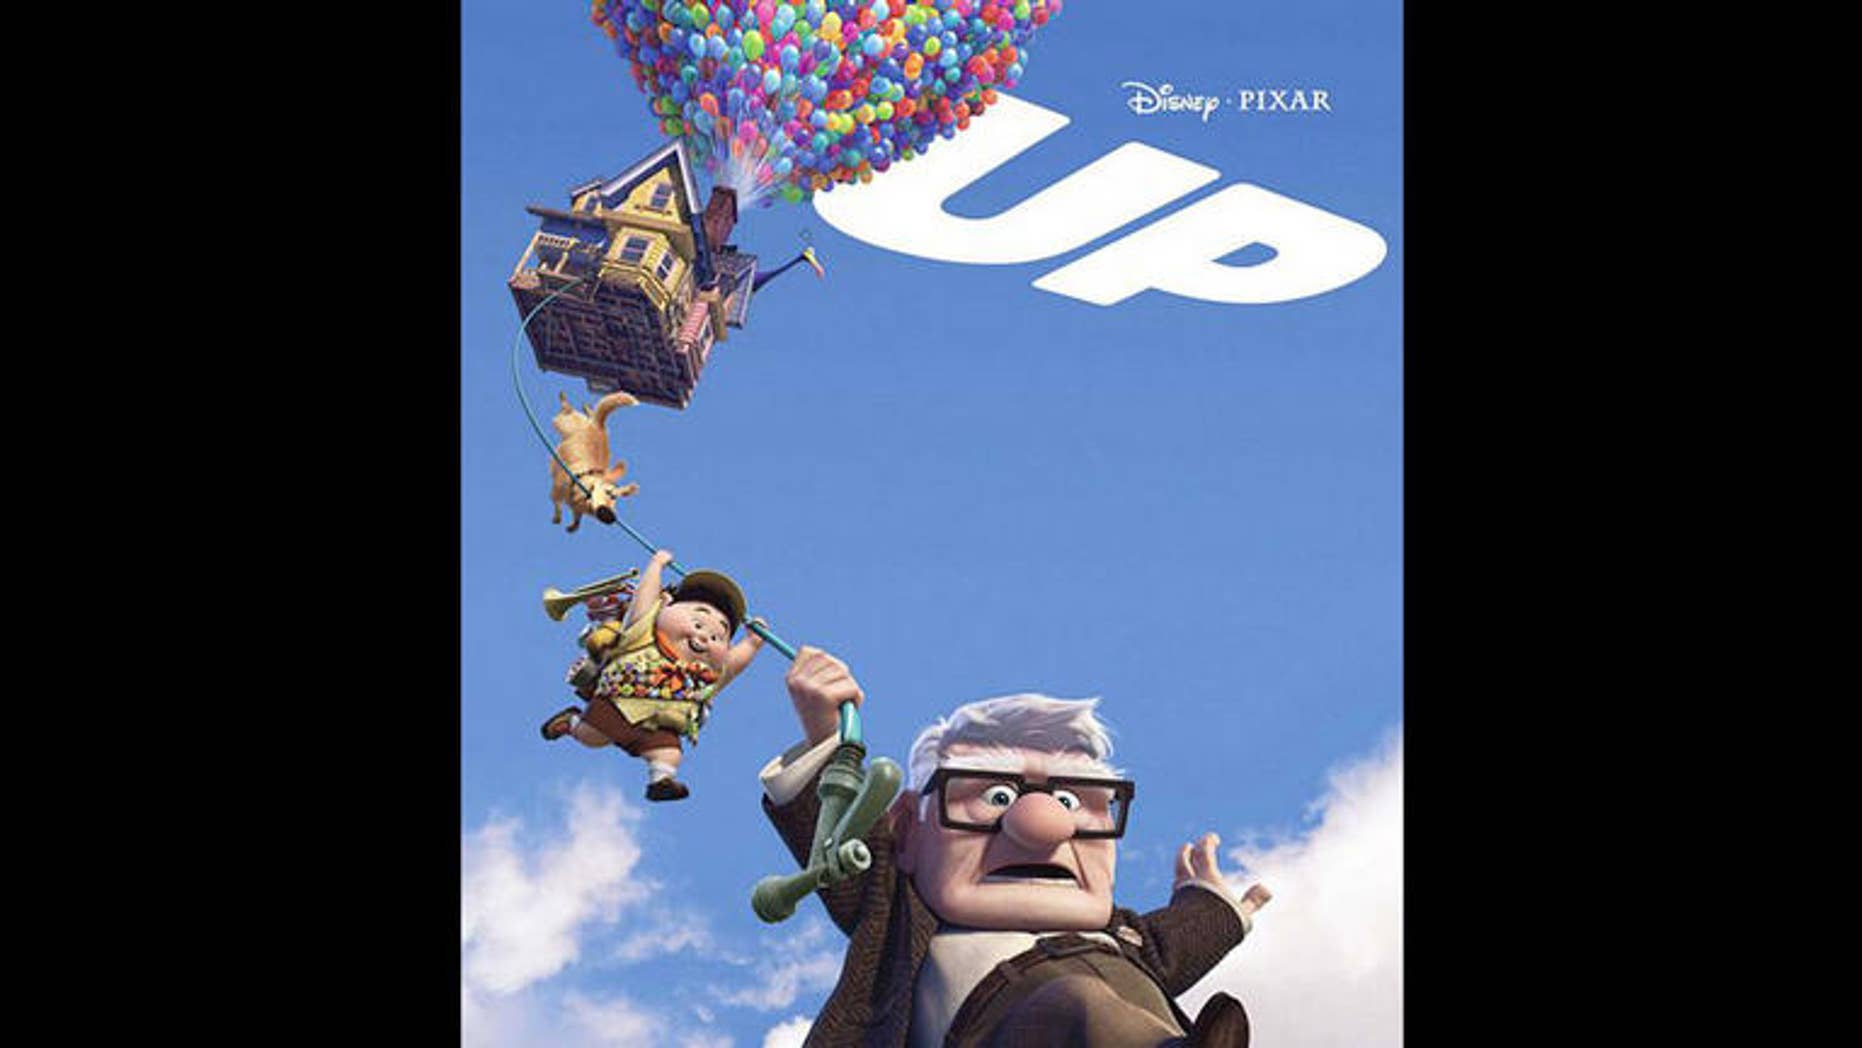 """The Pixar movie """"Up"""" served as his inspiration."""